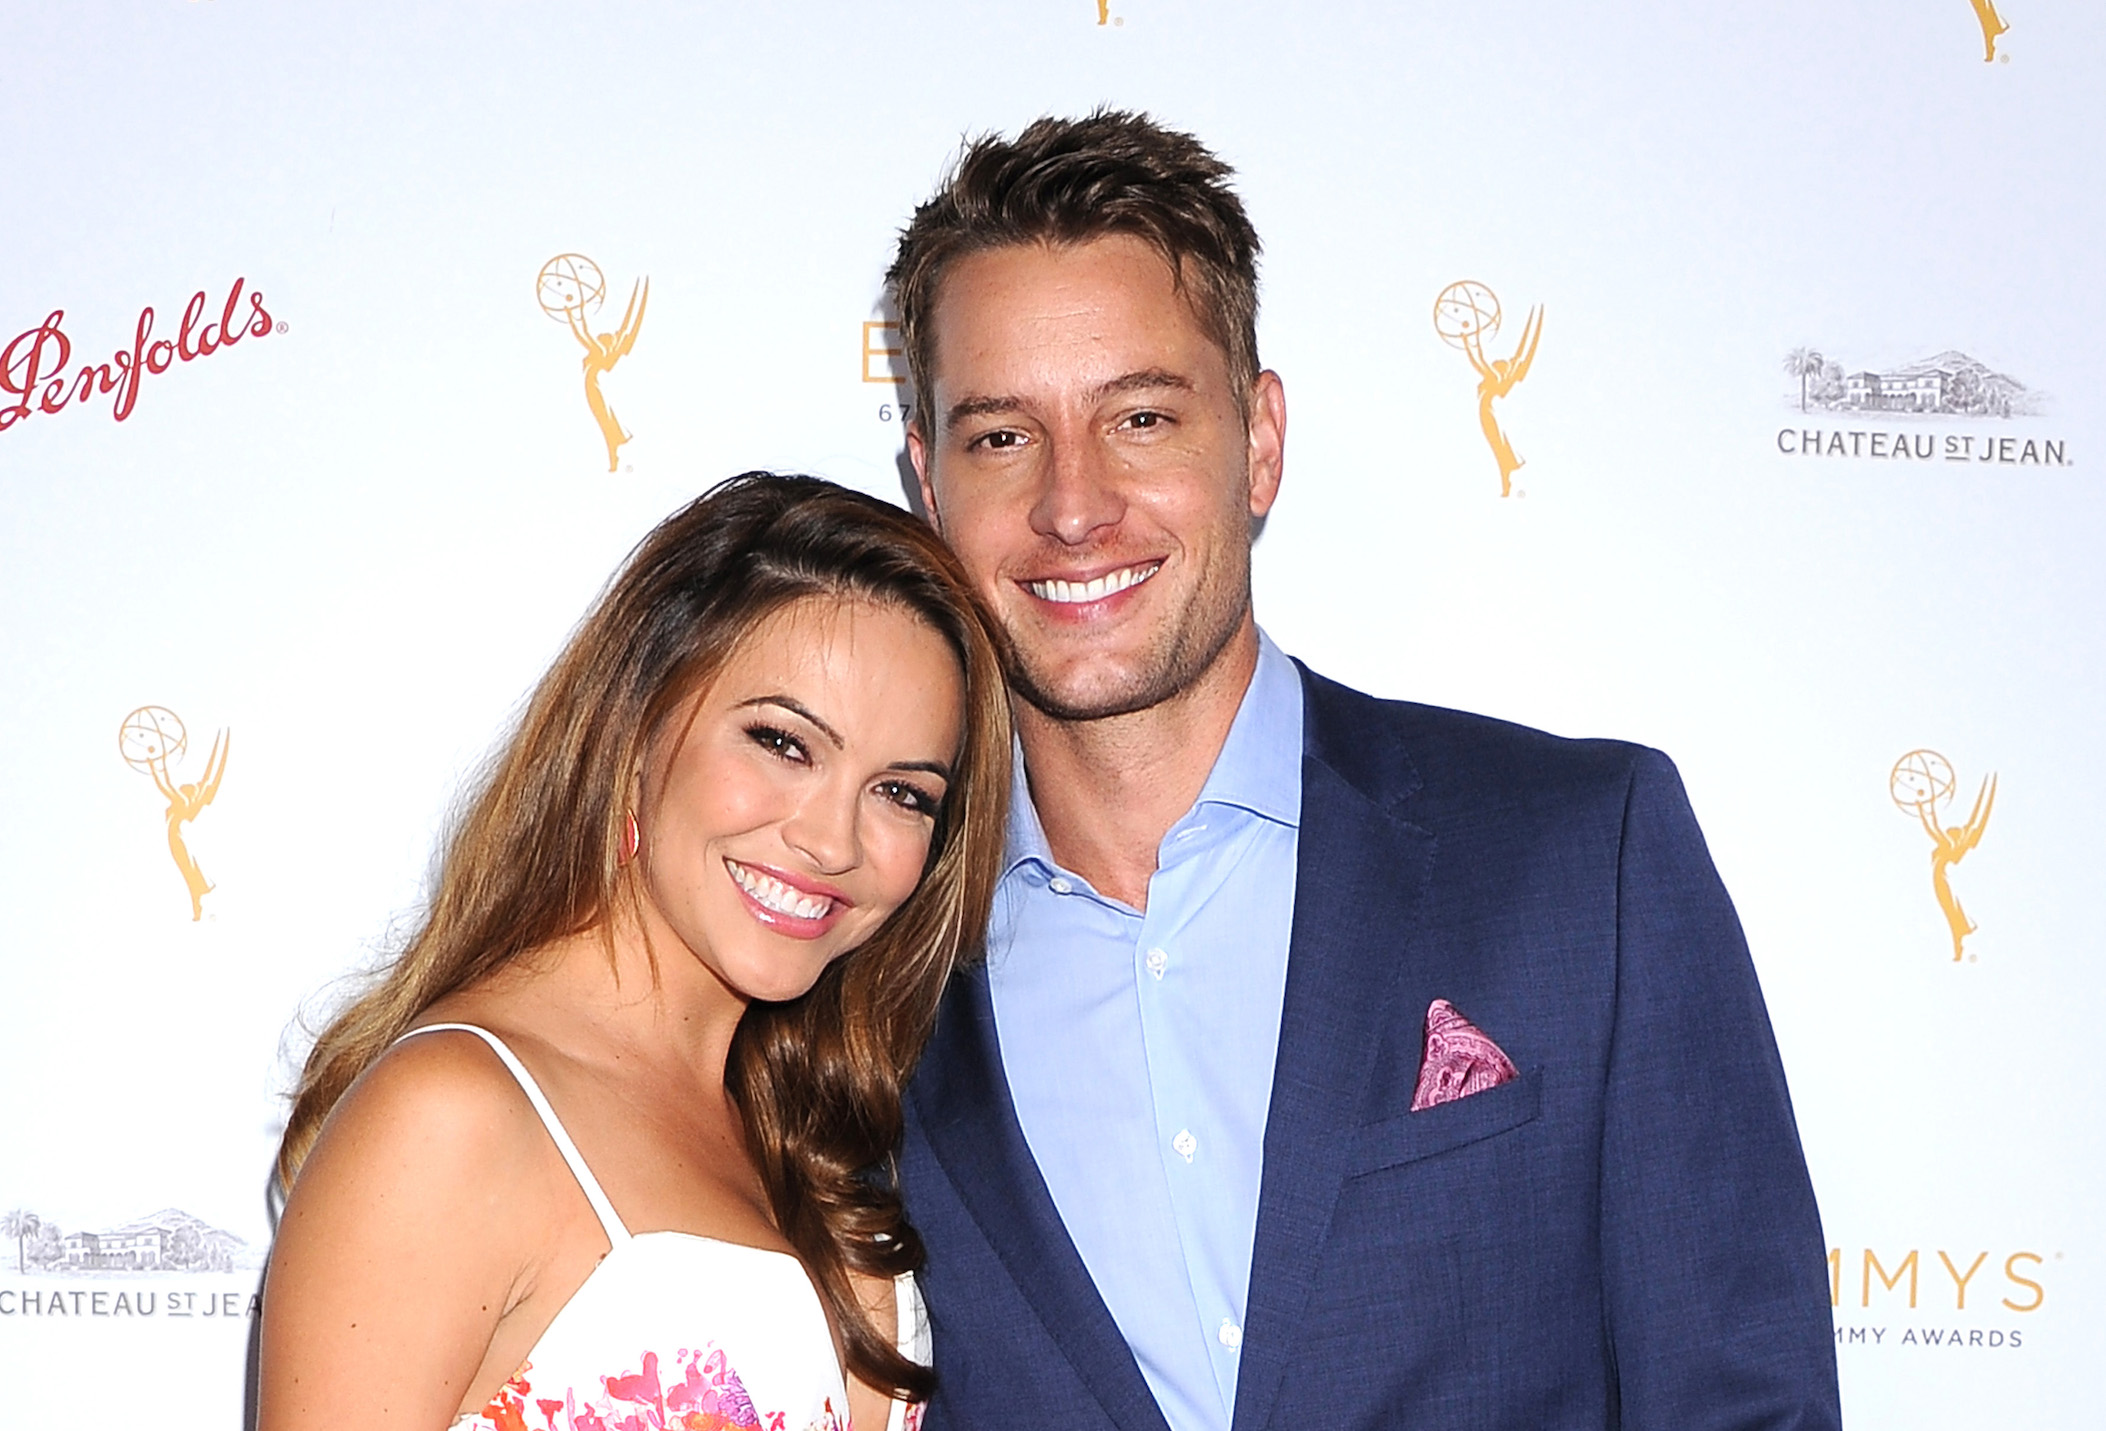 Y&R's Justin Hartley and Chrishell Stause - Bergman